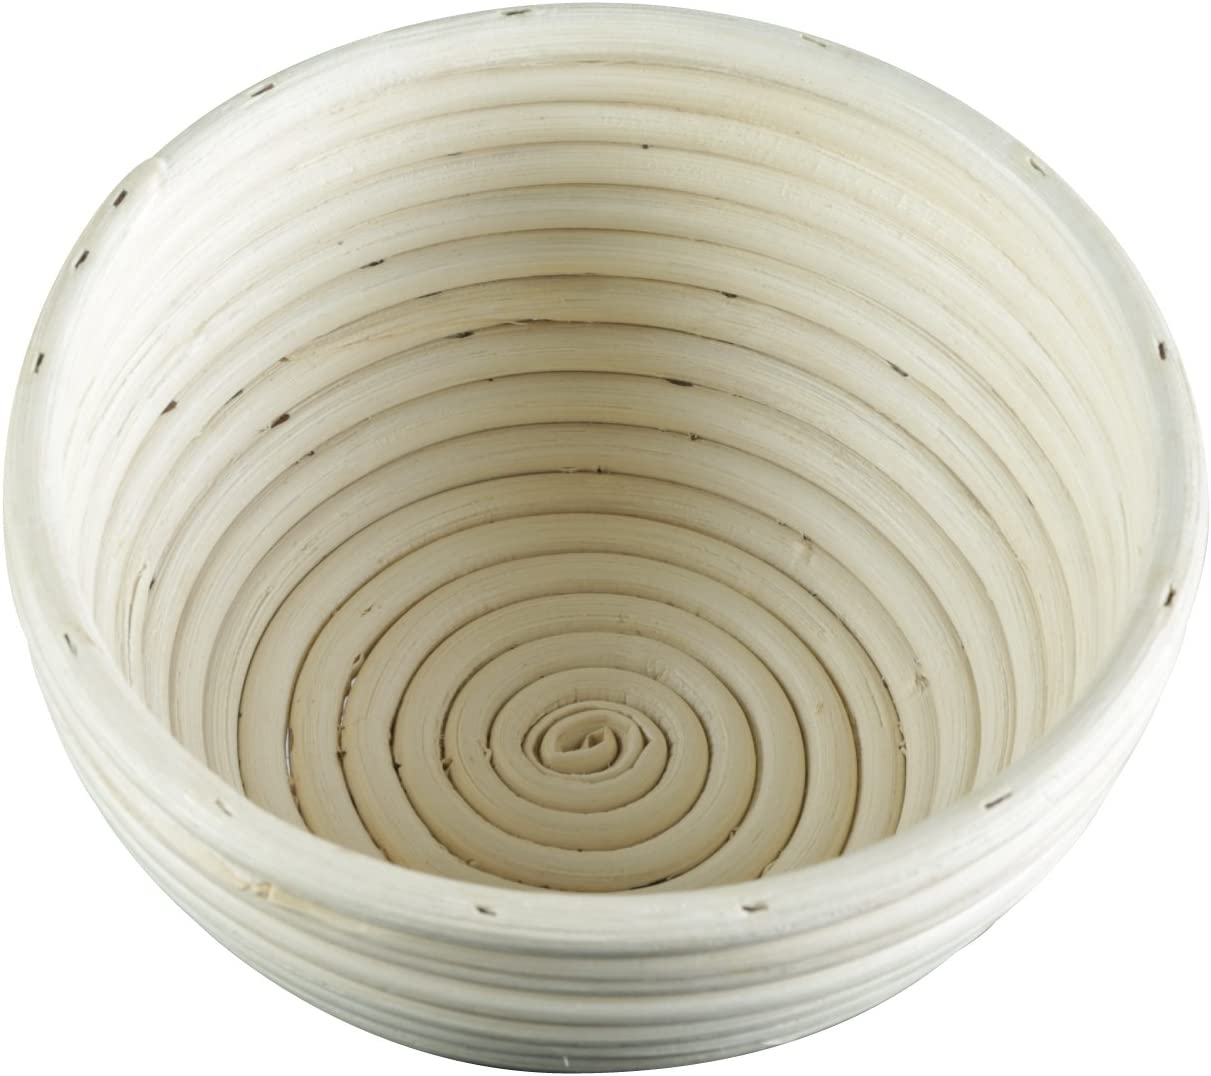 8-Inch Frieling USA Brotform Round Bread Rising Basket